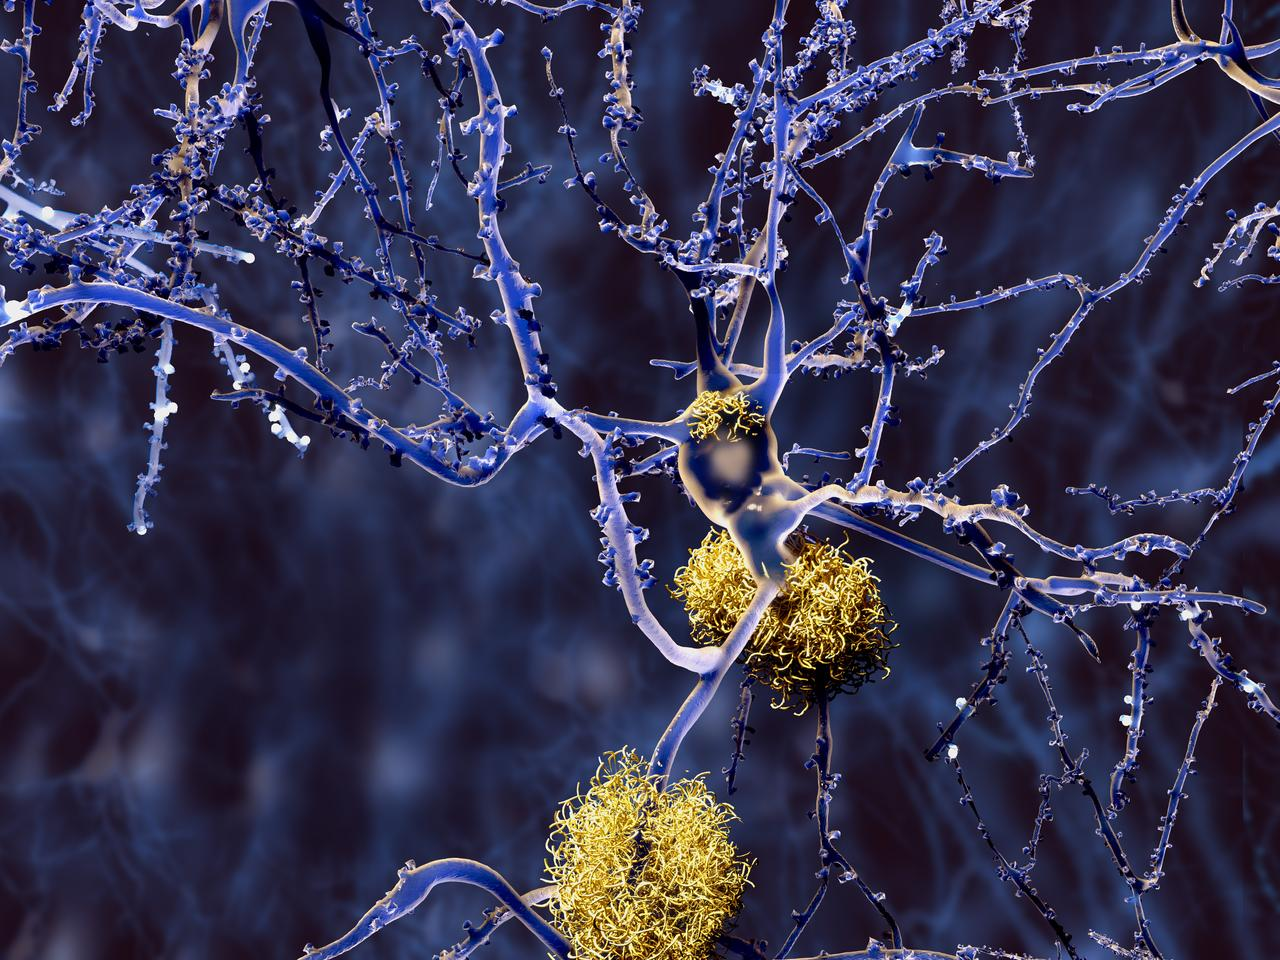 Amyloid-beta plaques in the brain are one of the potential culprits behind Alzheimer's disease